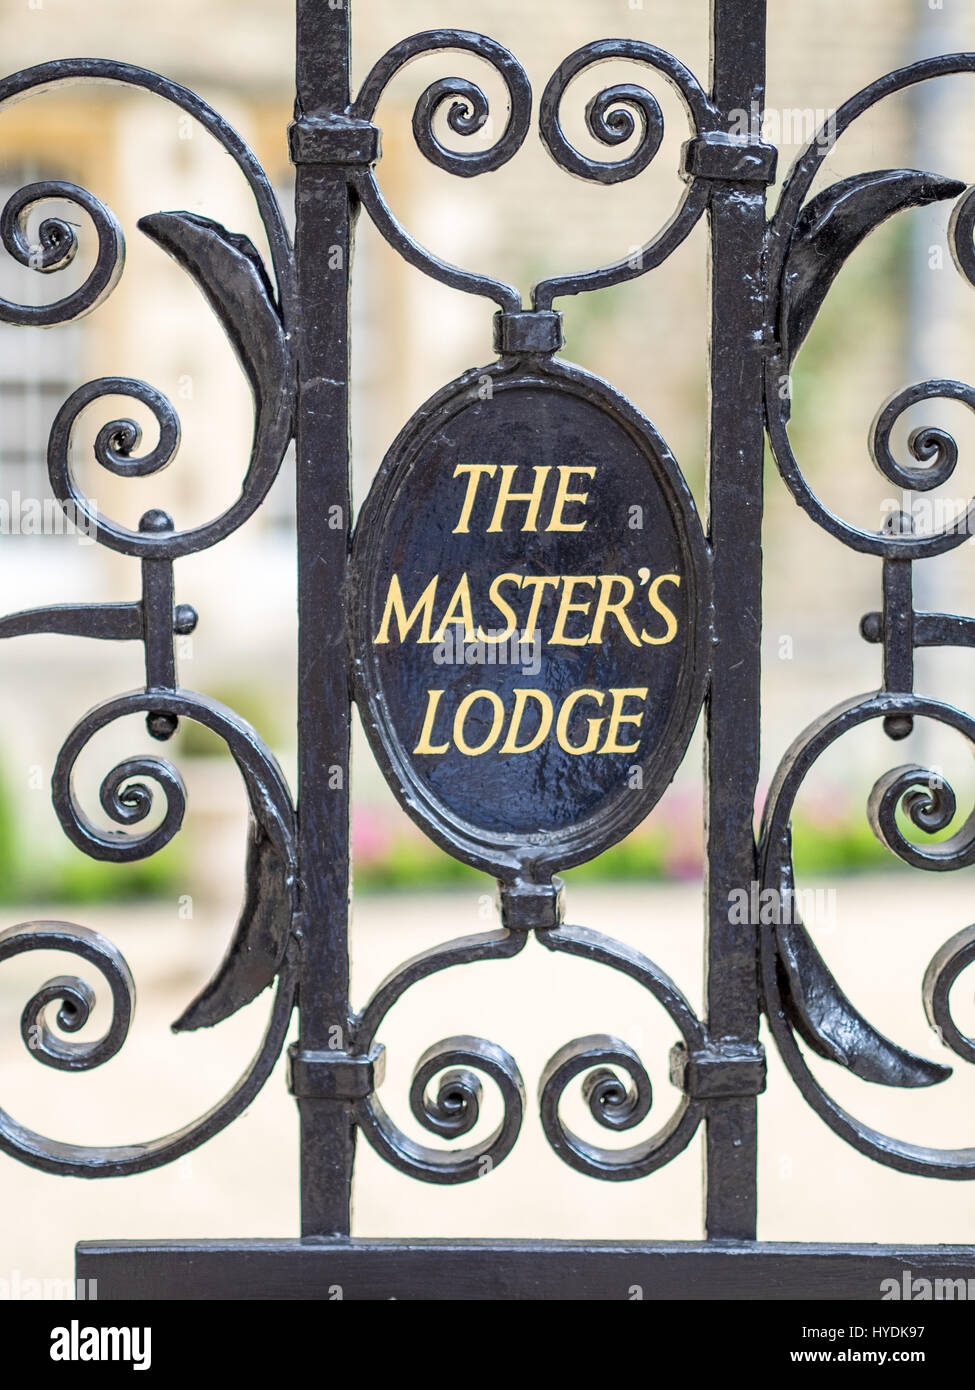 Gate to the Master's Lodge at Jesus College Cambridge UK - Stock Image